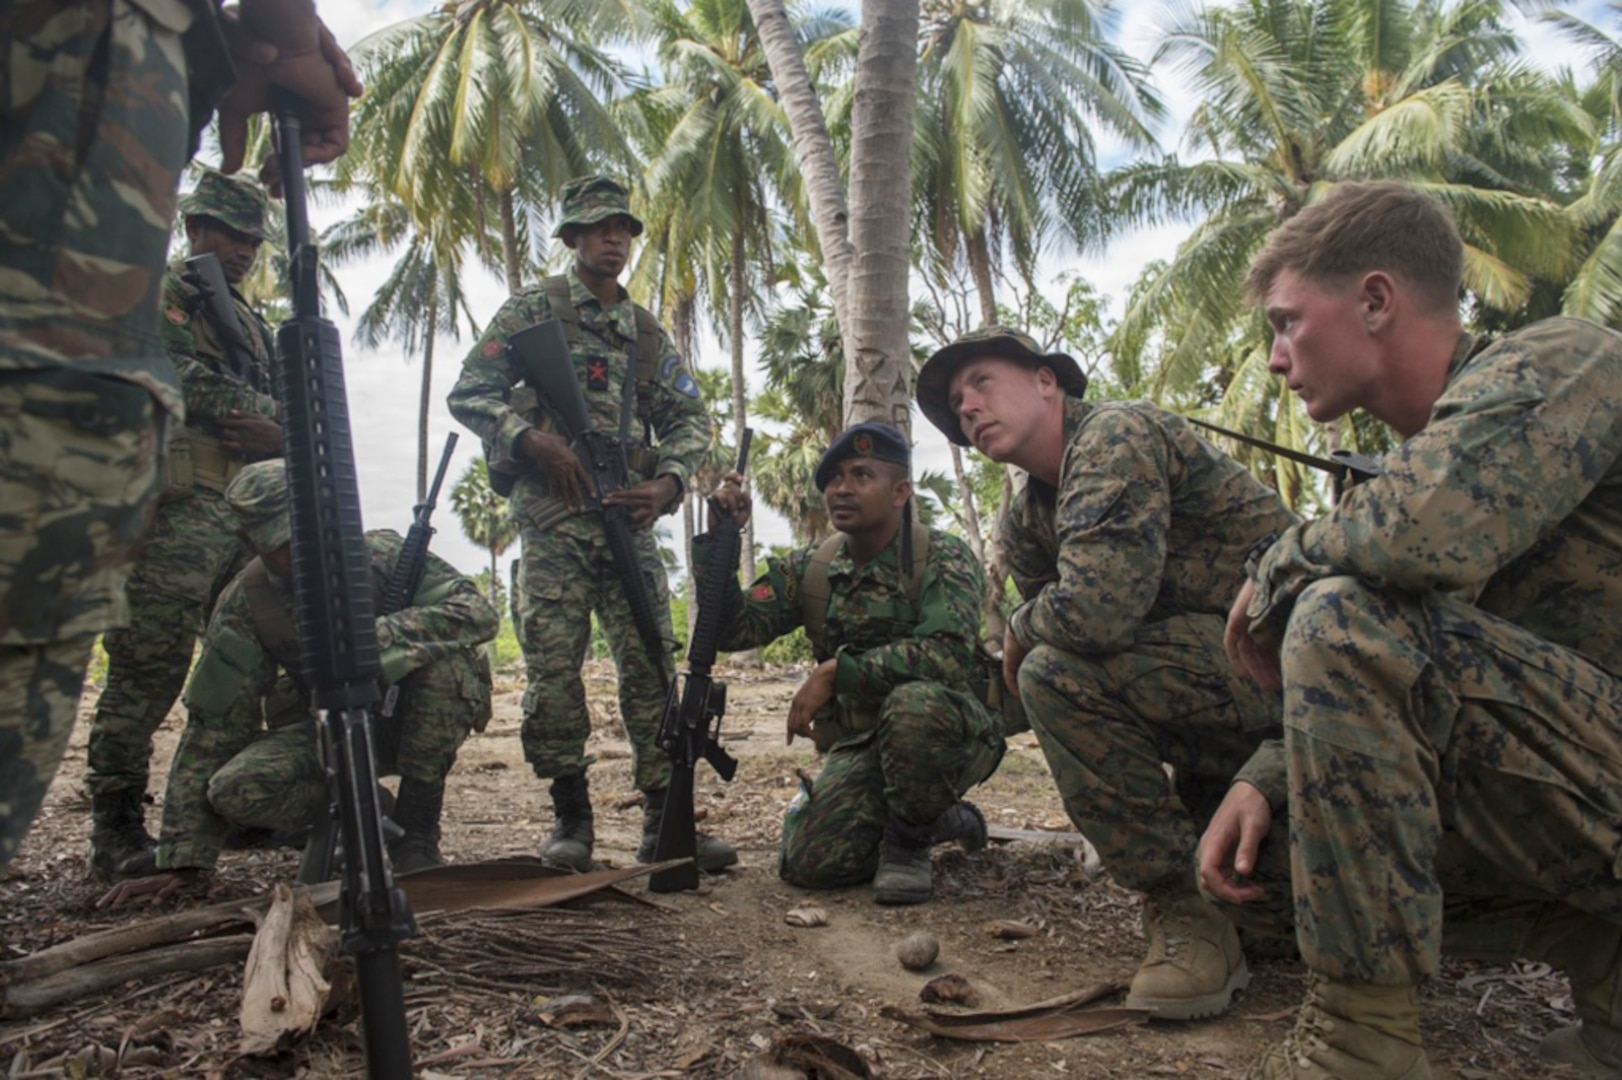 U.S. Marine Sgt. Christopher Krieg, assigned to Fleet Anti-terrorism Security Team Pacific, listens to a question from a Forsa Defesa Timor-Leste (F-FDTL) service member while discussing convoy ambushes during Cooperation Afloat Readiness and Training (CARAT) Timor-Leste 2016. The focus of CARAT is developing maritime security capabilities and increasing interoperability among participants. Skill areas exercised during CARAT include Maritime Interdiction Operations; riverine, amphibious and undersea warfare operations; diving and salvage operations; naval gunnery and maneuvering events, along with disaster response exercises.